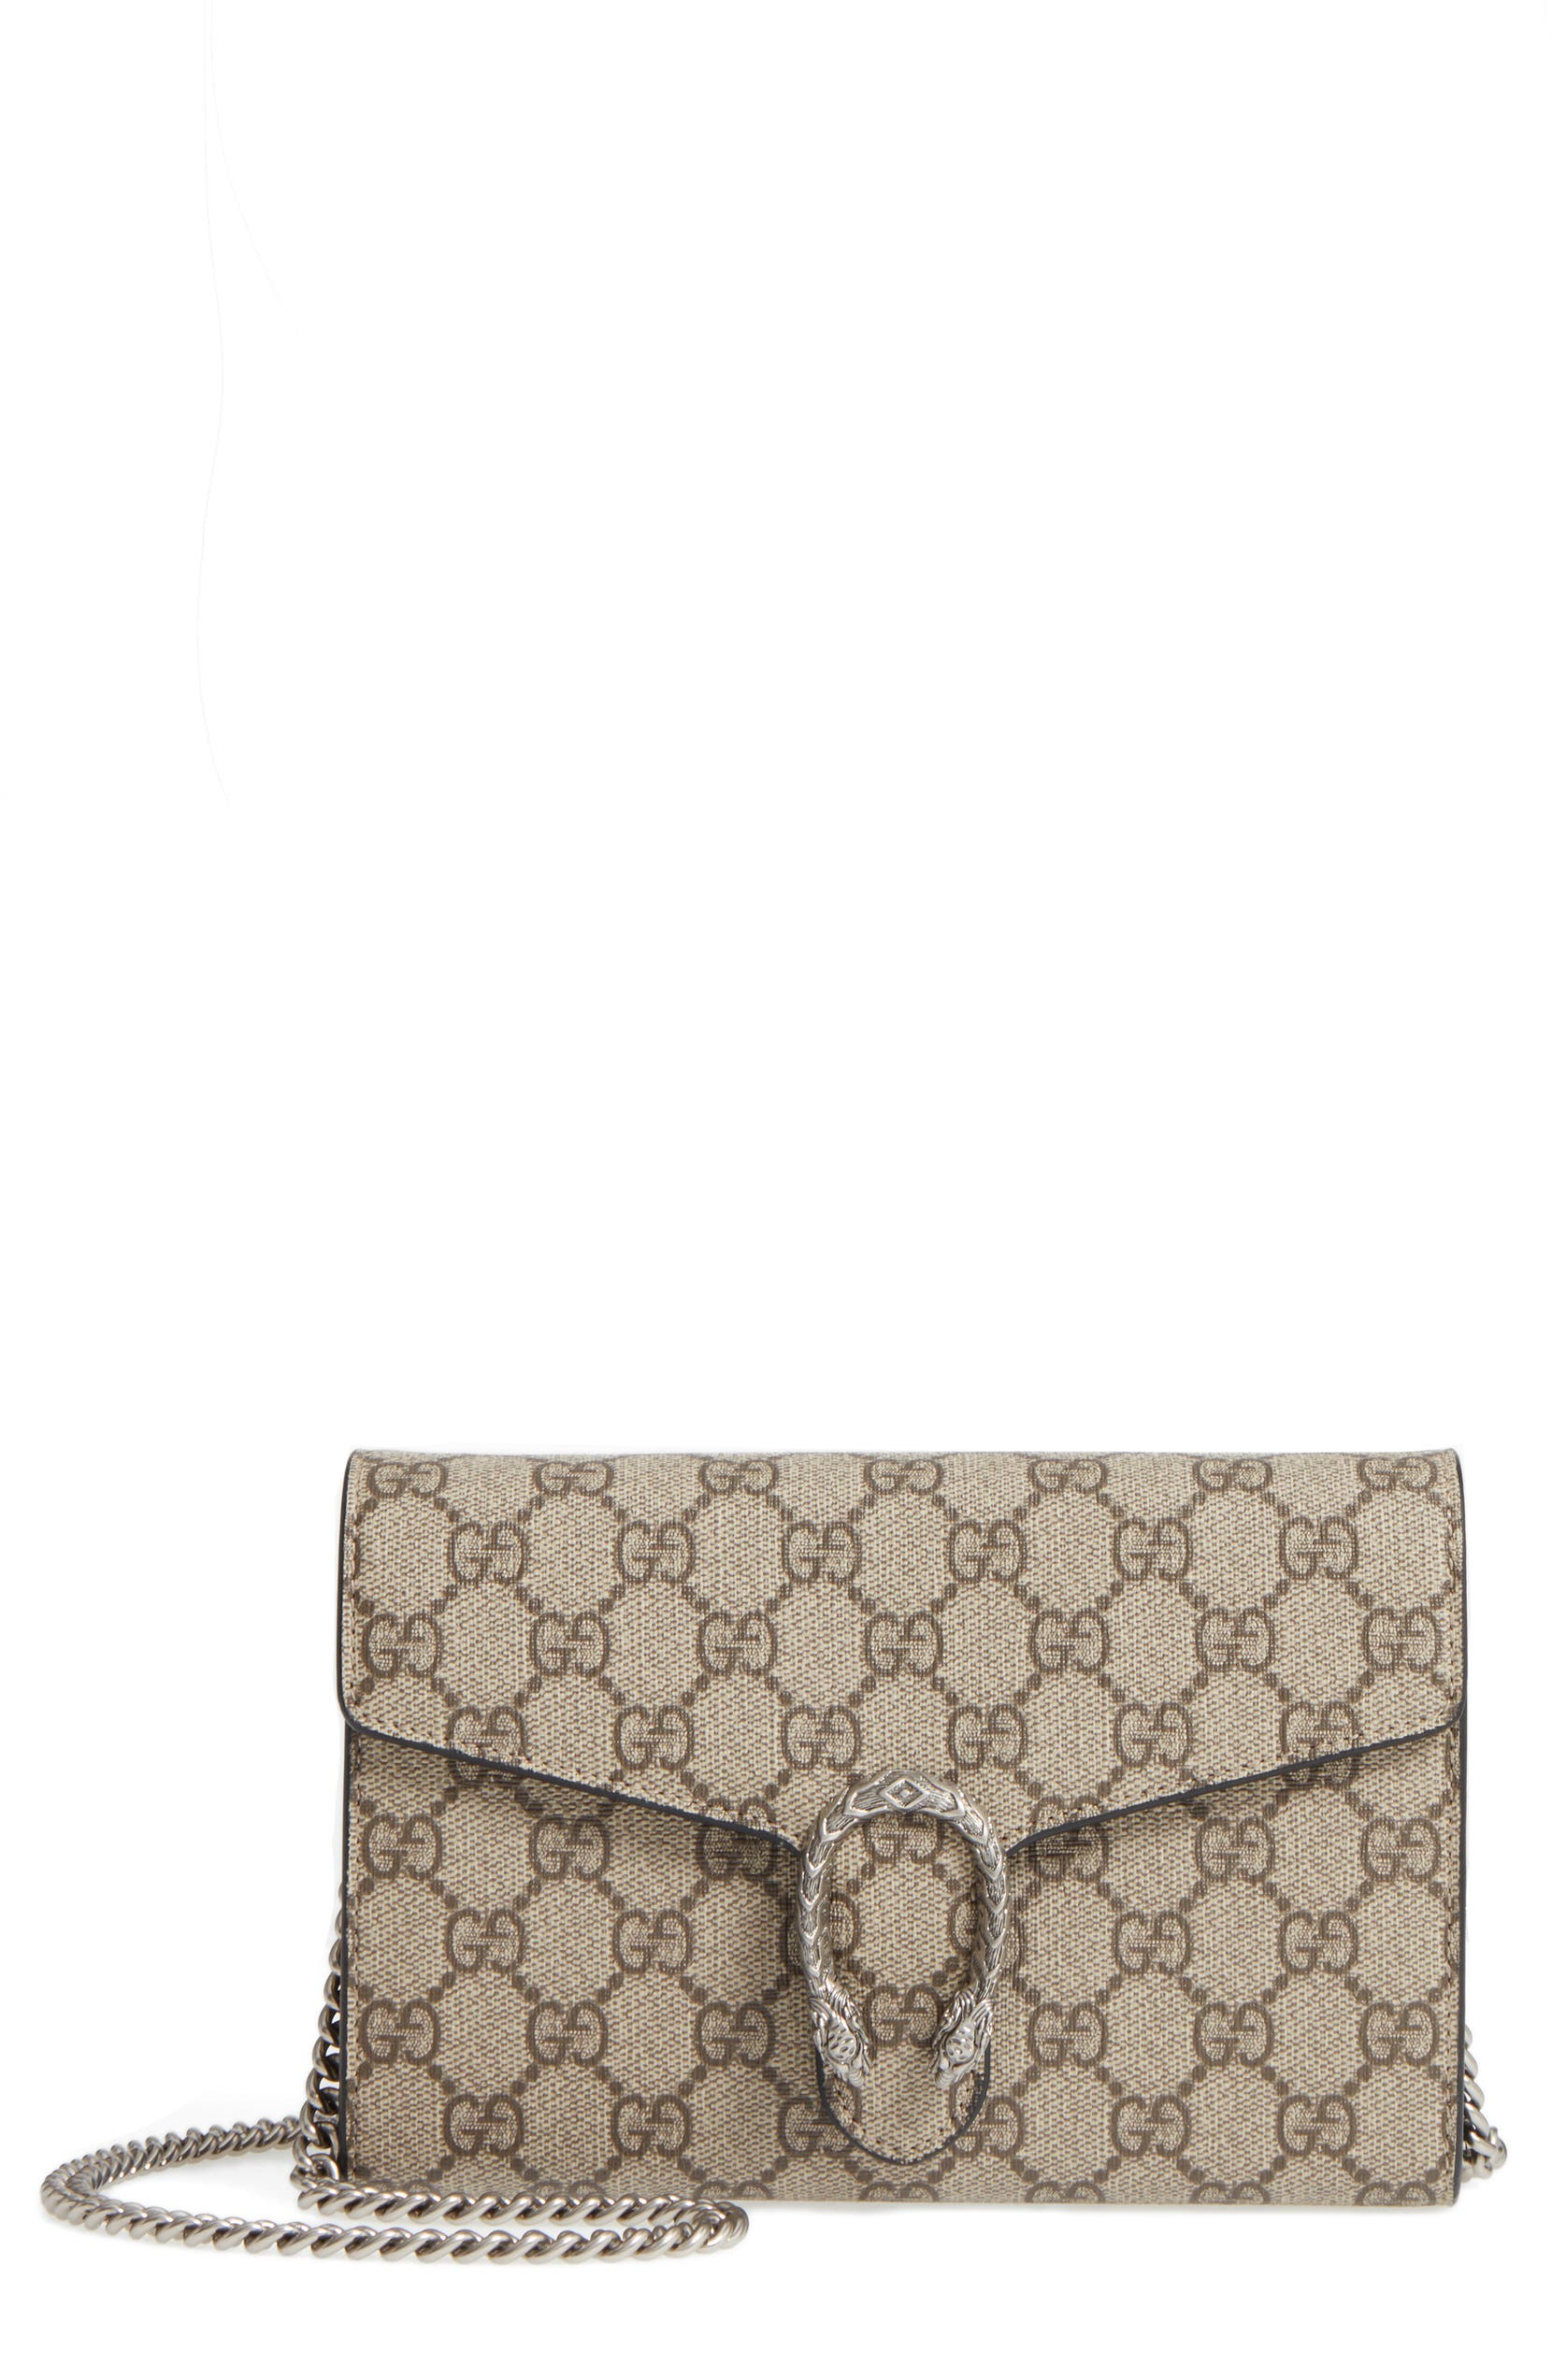 ff0777b268d Gucci Dionysus GG Supreme Canvas Wallet on a Chain